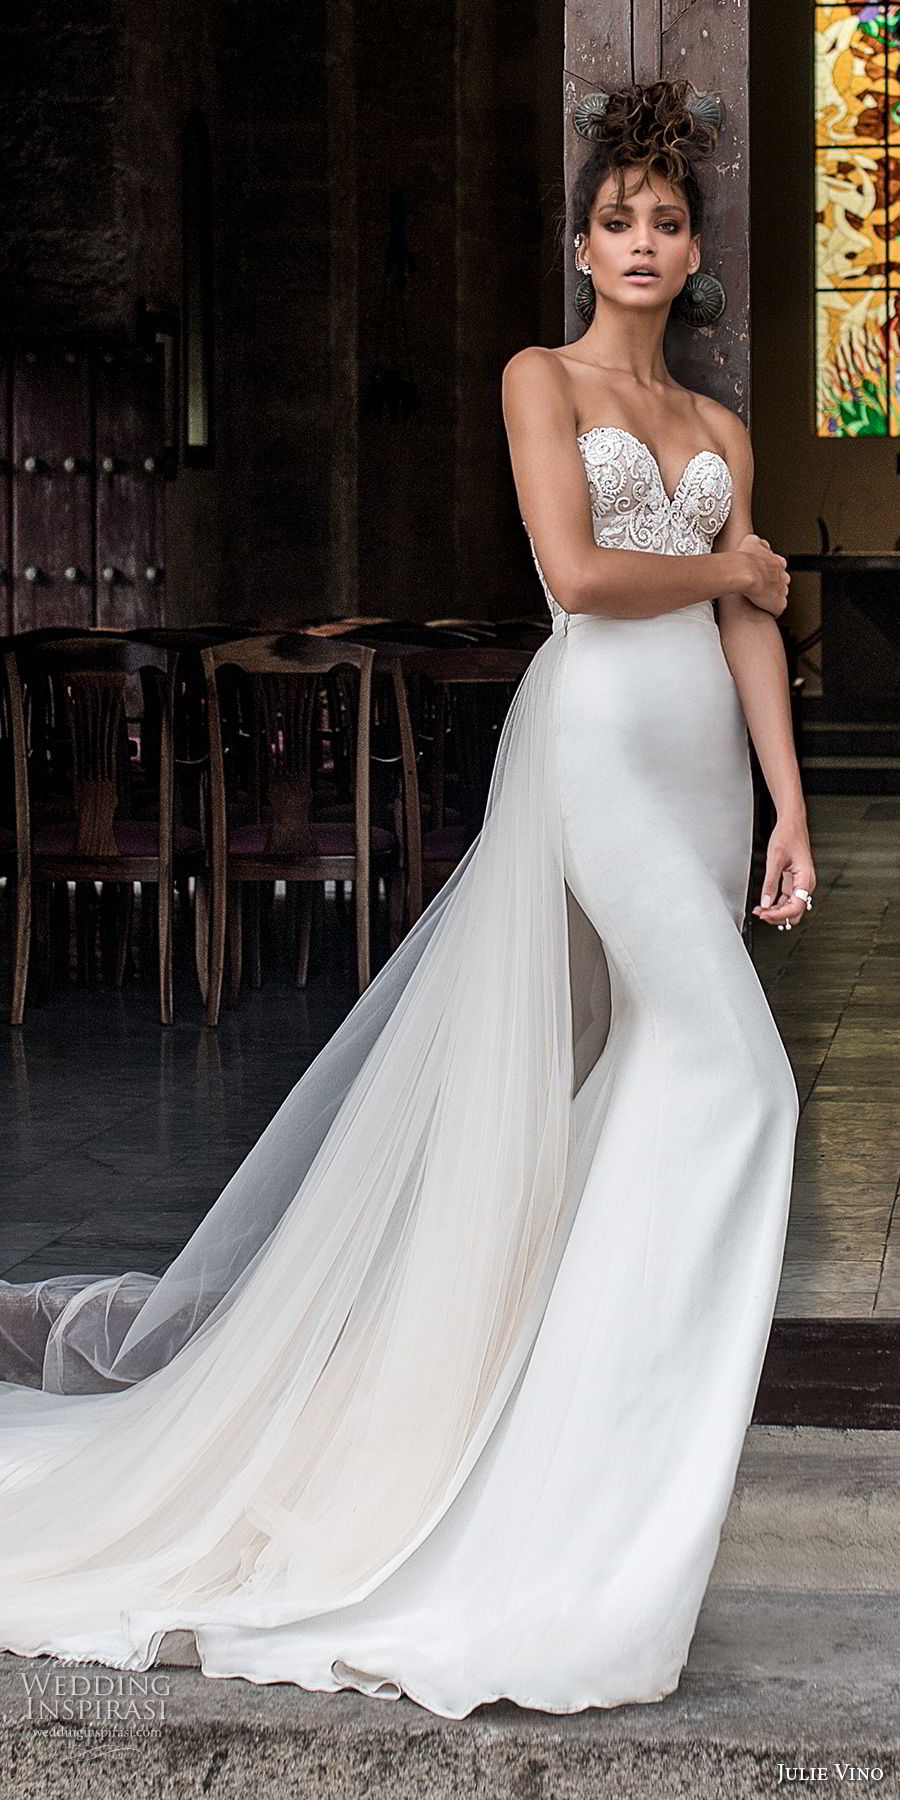 julie vino fall 2018 havana strapless sweetheart neckline heavily embellished elegant sheath wedding dress chapel train (9) mv